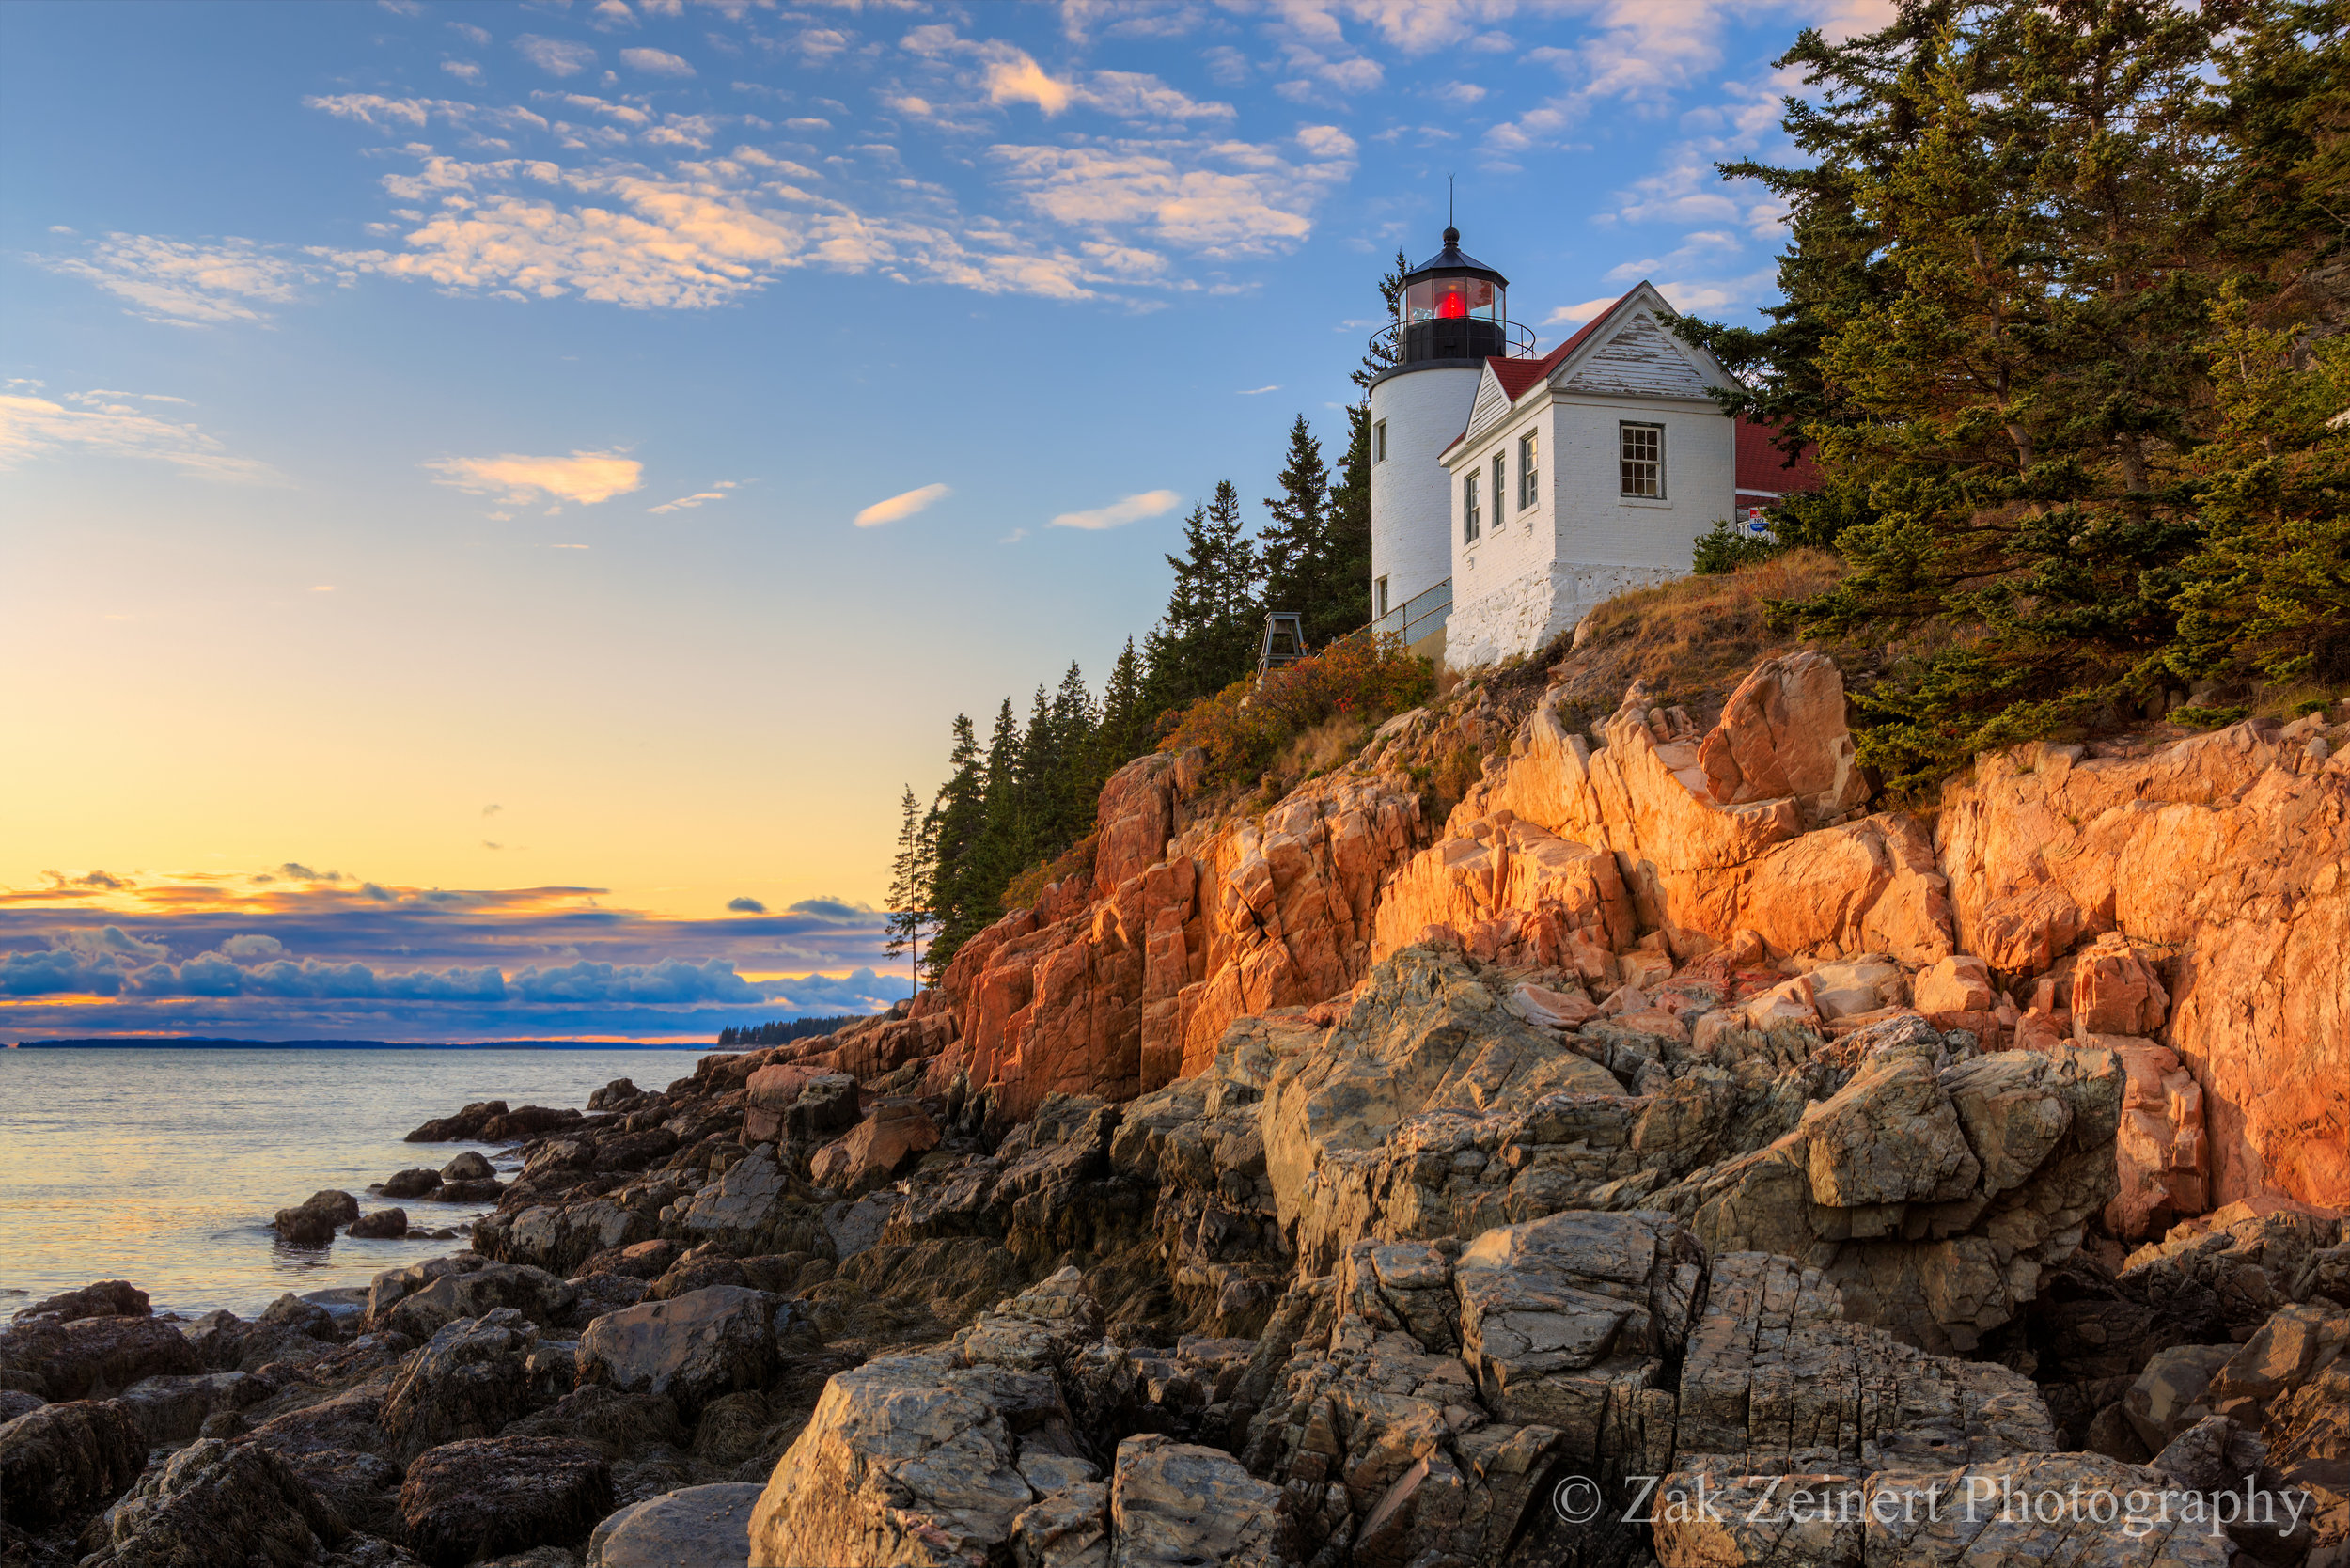 Bass Harbor lighthouse at sunset. Two days later a massive storm would blow in and this rock was shooting on would be submerged by the pounding of monstrous Atlantic waves